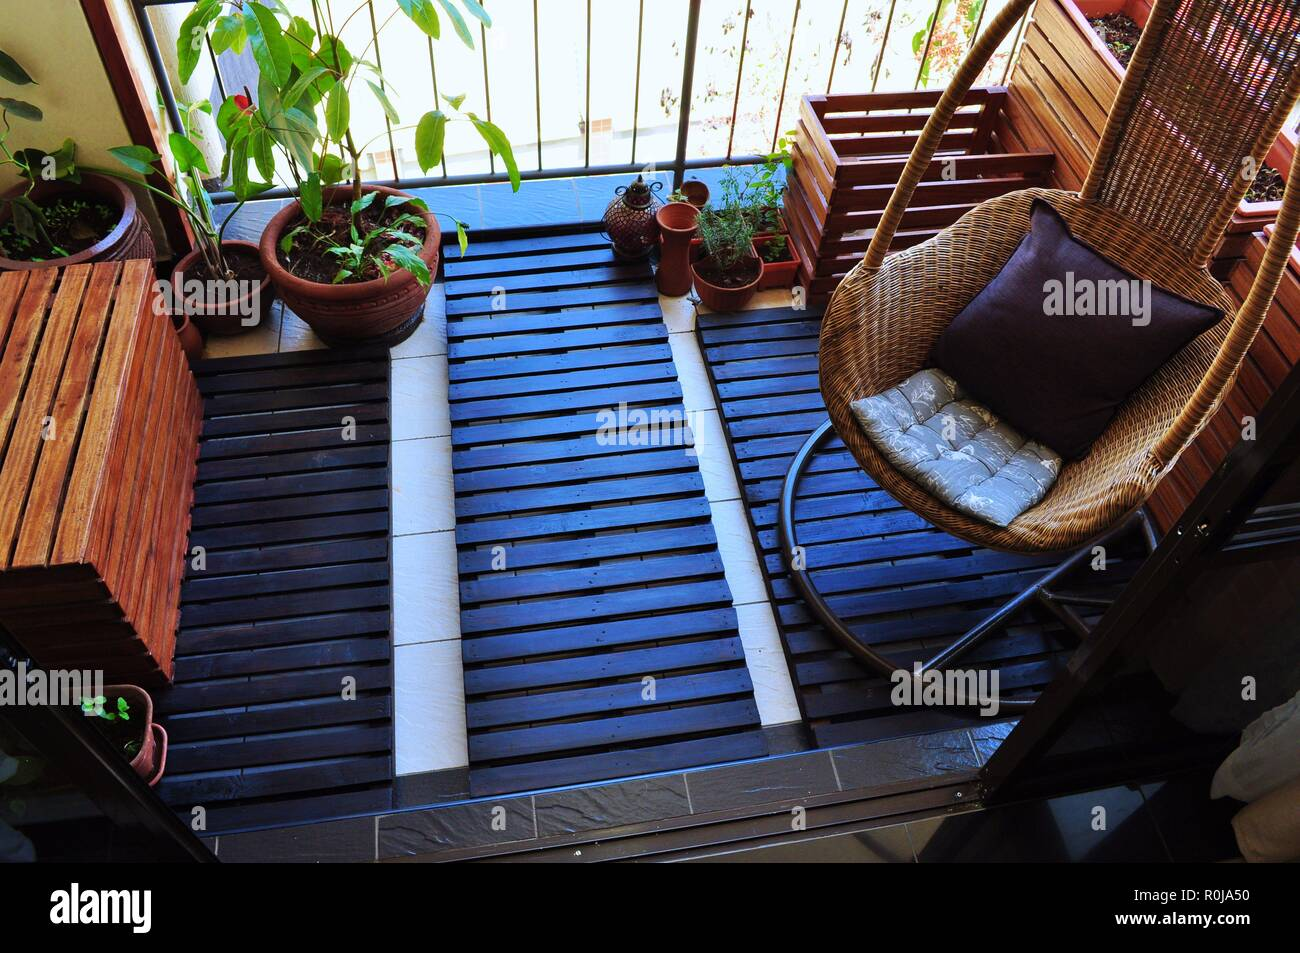 View of our beautiful small Balcony Garden on a sunny day, this is our best way to go green , relaxing and refreshing, mainly used wood - Stock Image